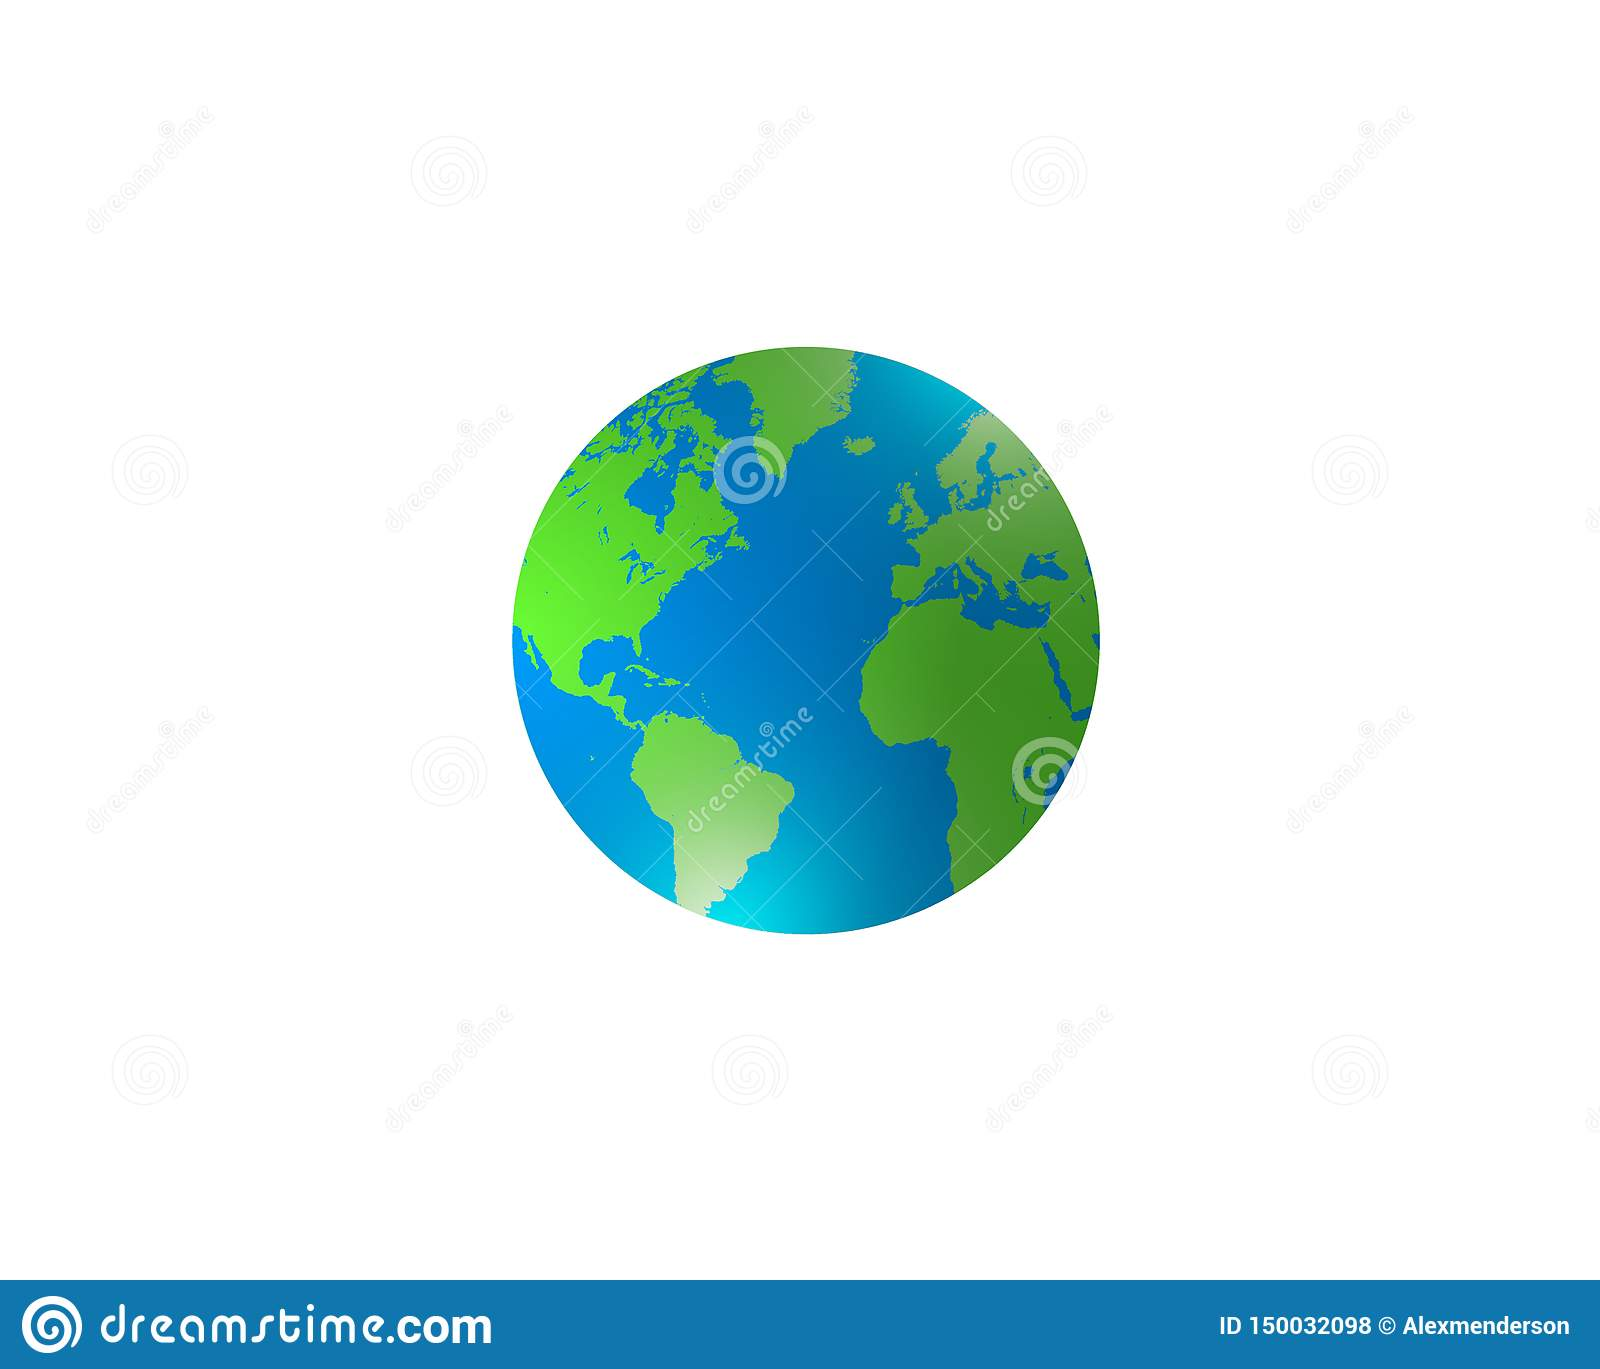 World Globe Map With Continents And Oceans Stock Photo ...